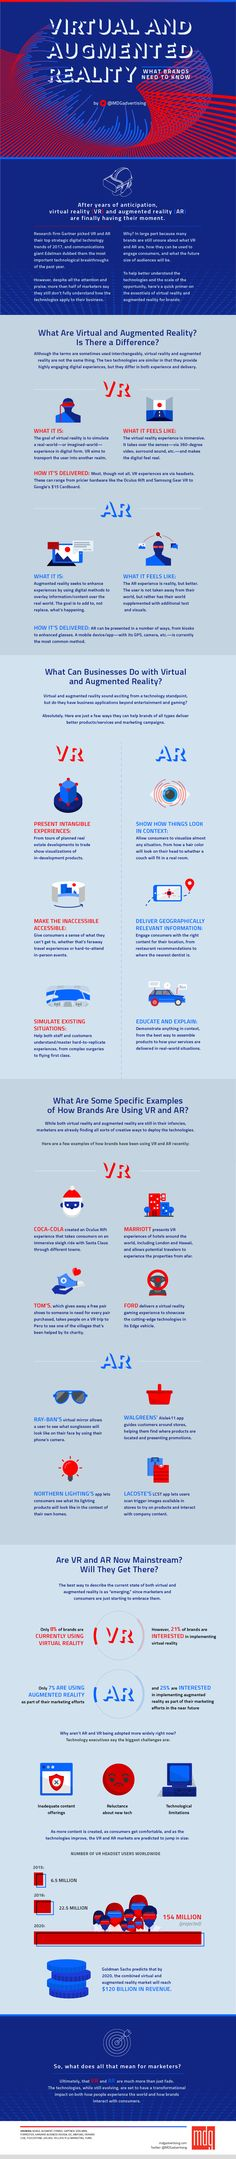 Virtual and Augmented Reality: What Brands Need to Know [Infographic] | Social Media Today